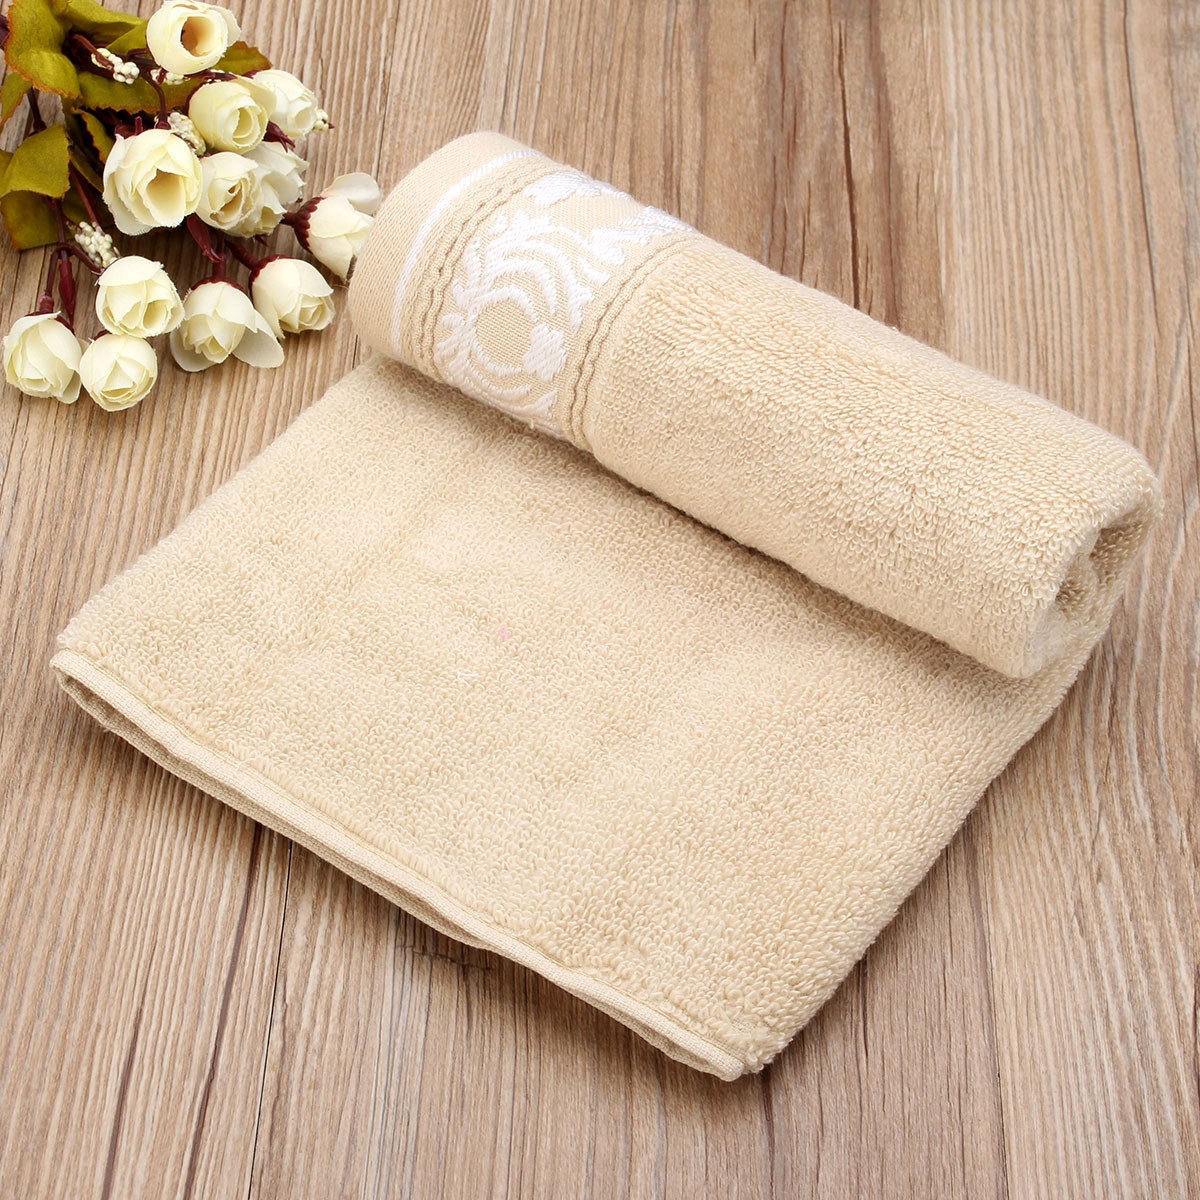 Difference Between Kitchen Towel And Bath